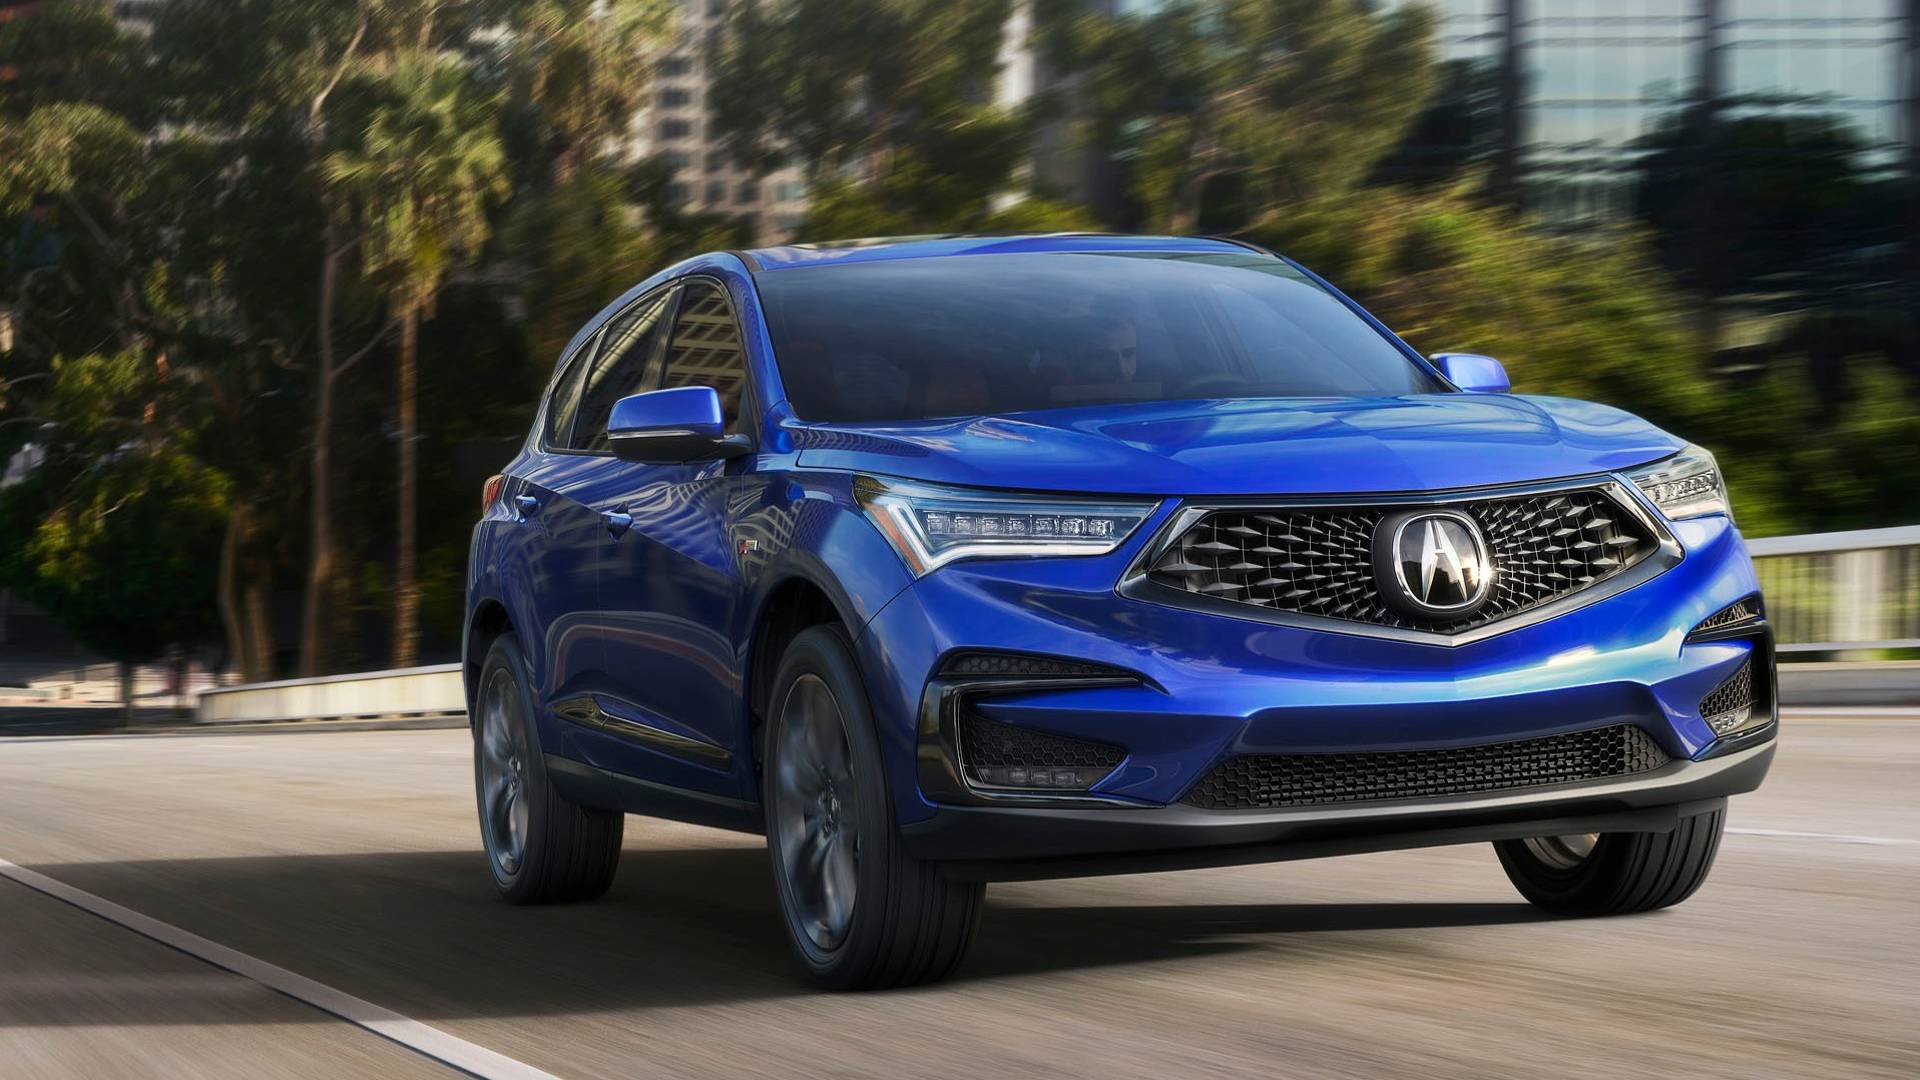 2020 Acura Mdx Rumors Changes Release Date Price Acura Mdx Acura Automotive Sales